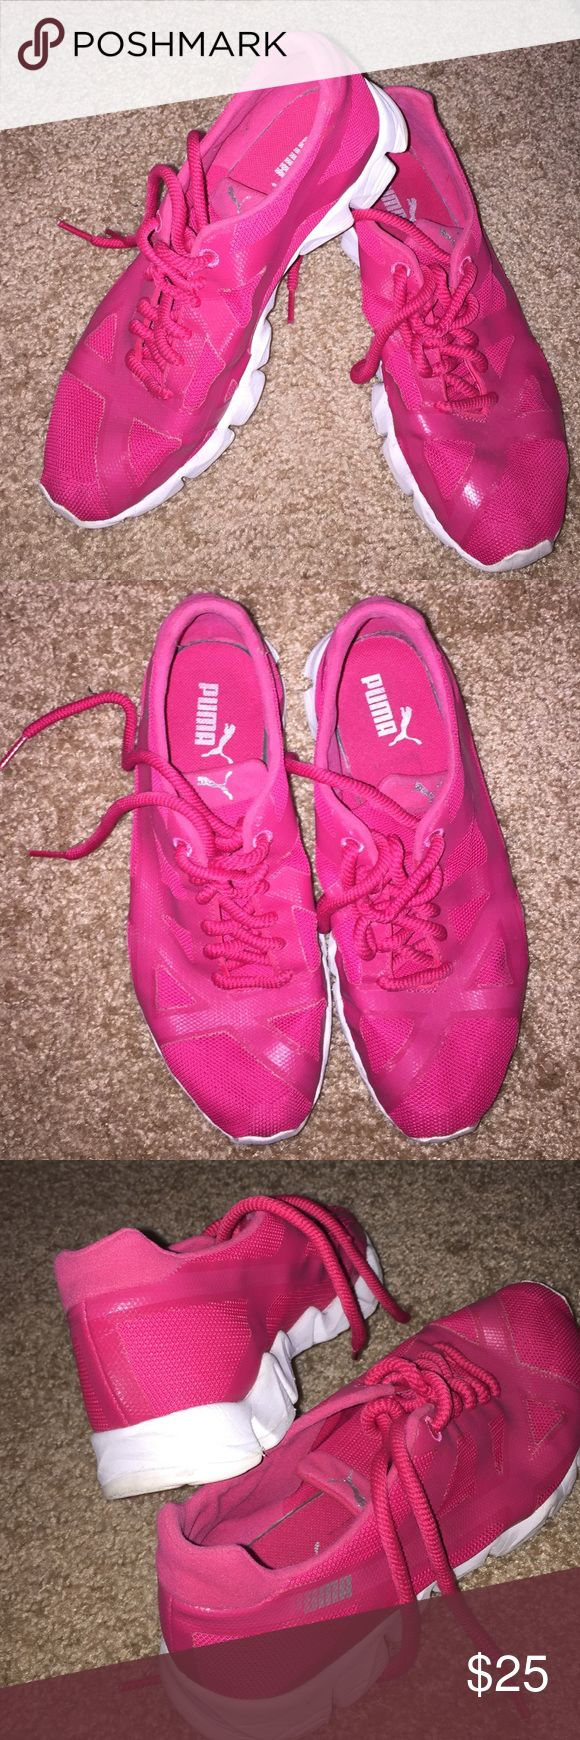 Pink Puma sneakers workout training Pink Puma sneakers workout training Puma Shoes Athletic Shoes